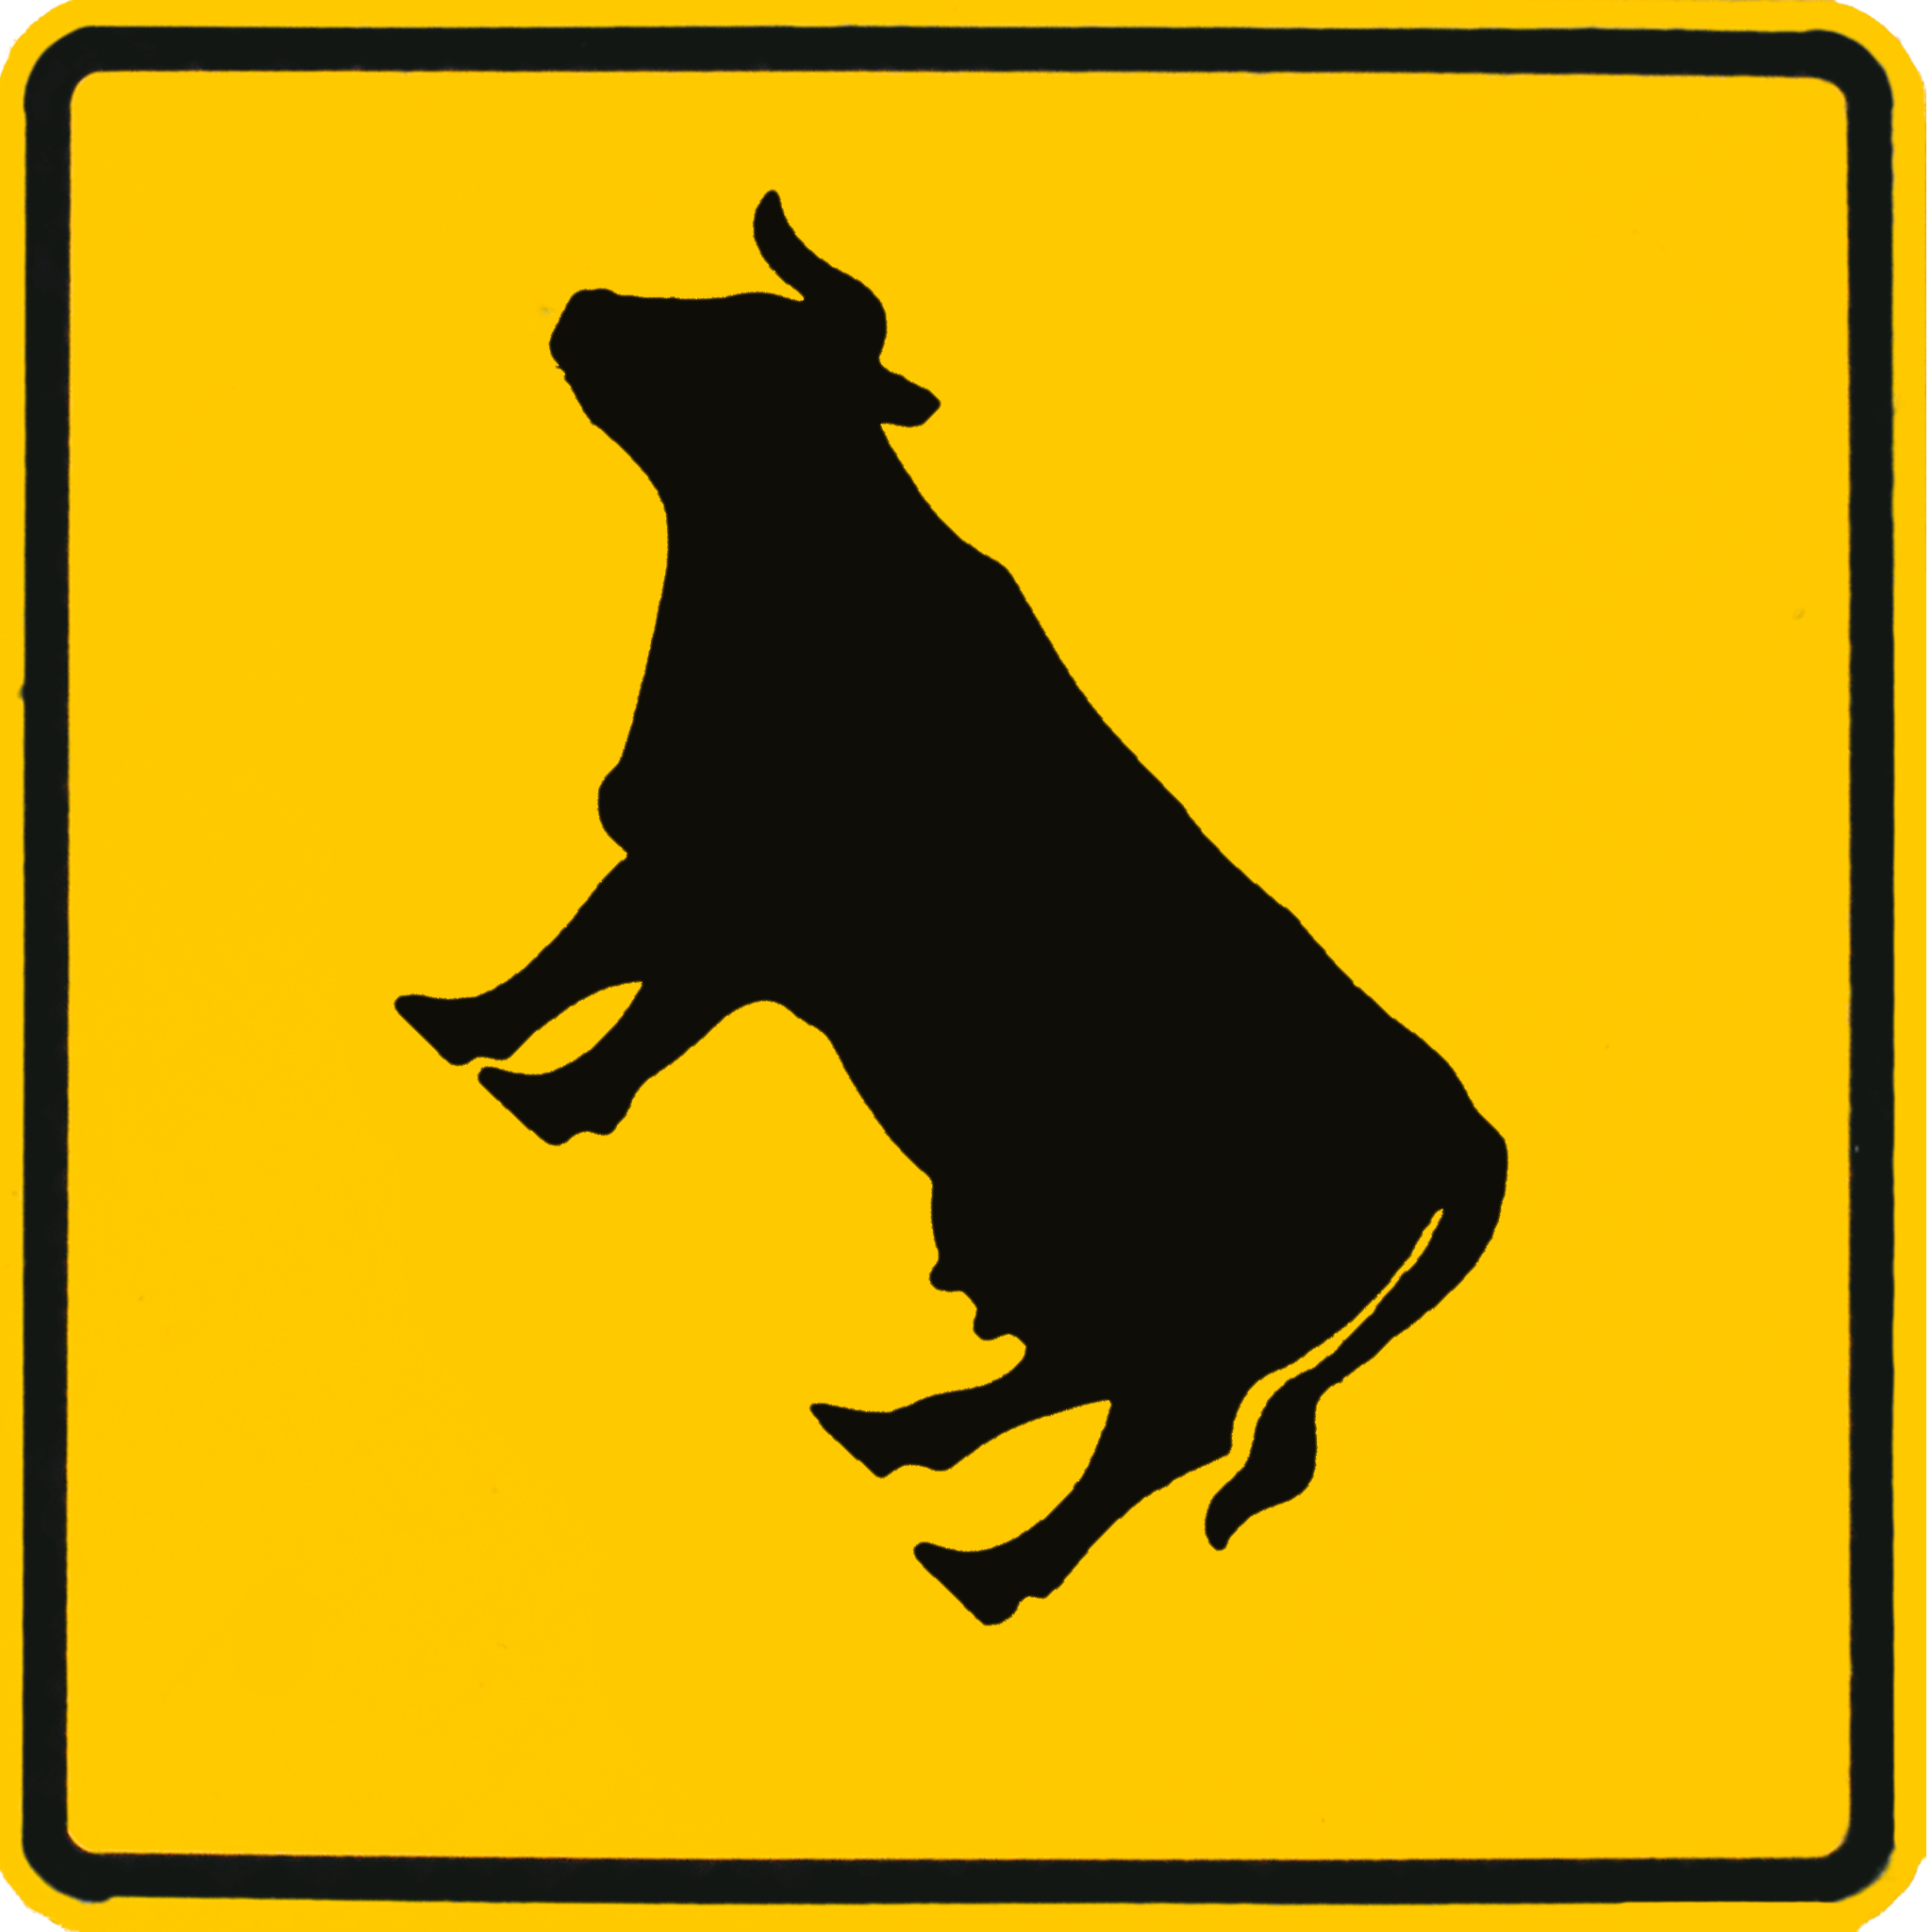 Cow Crossing.png